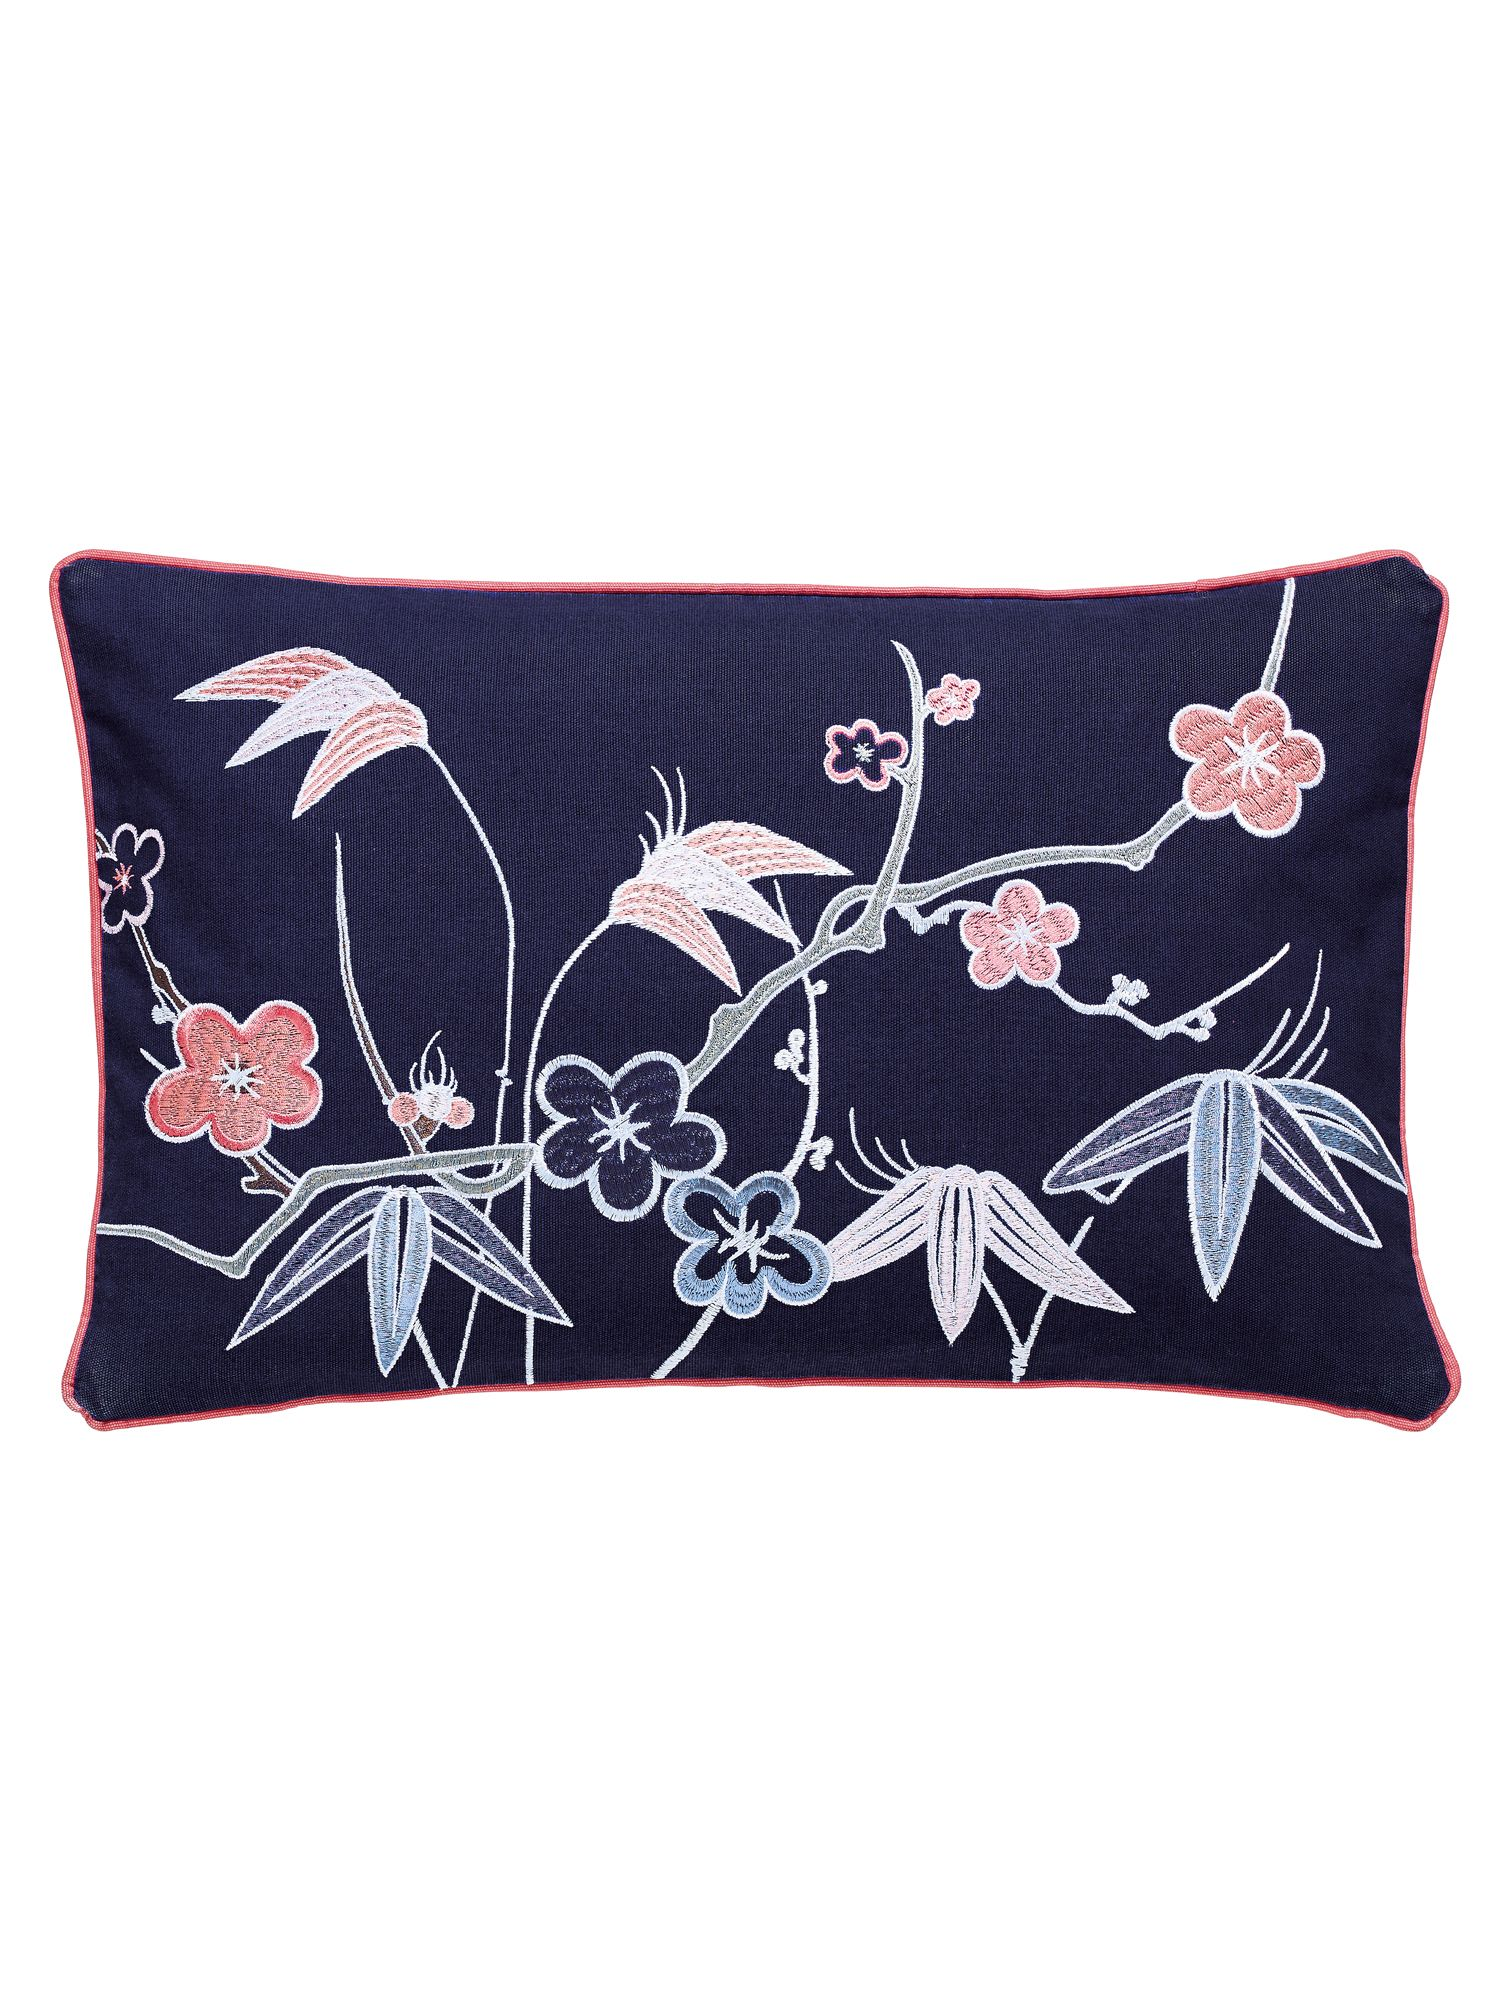 Image of V&A Akimi cushion 30X50cm navy